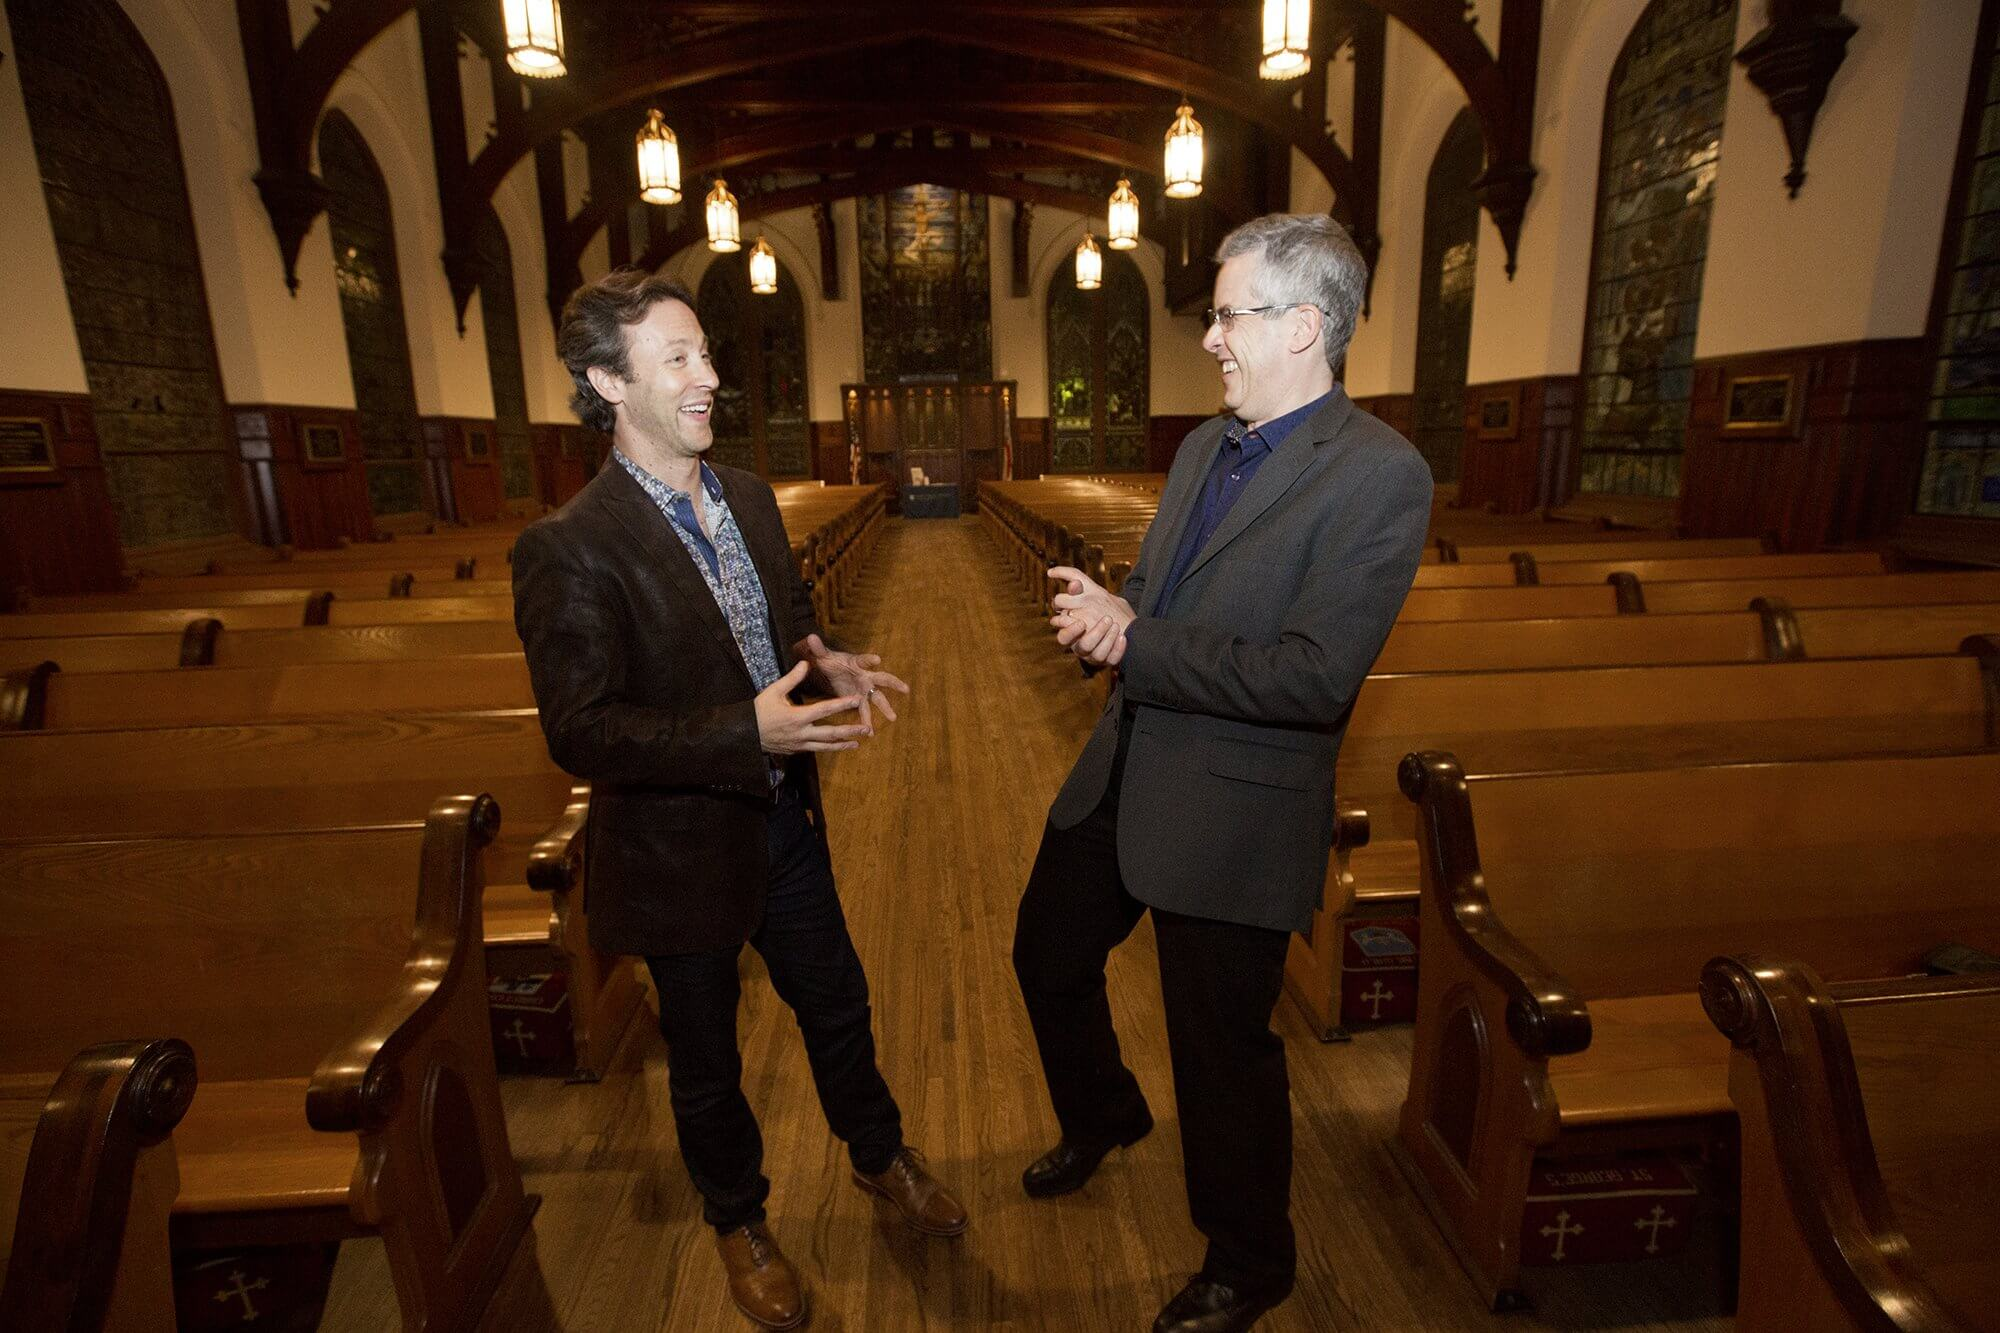 David Eagleman, Ph.D., and Anthony Brandt, Ph.D., joke around together after a sold out appearance at Christ Church Cathedral to promote their new book, The Runaway Species.